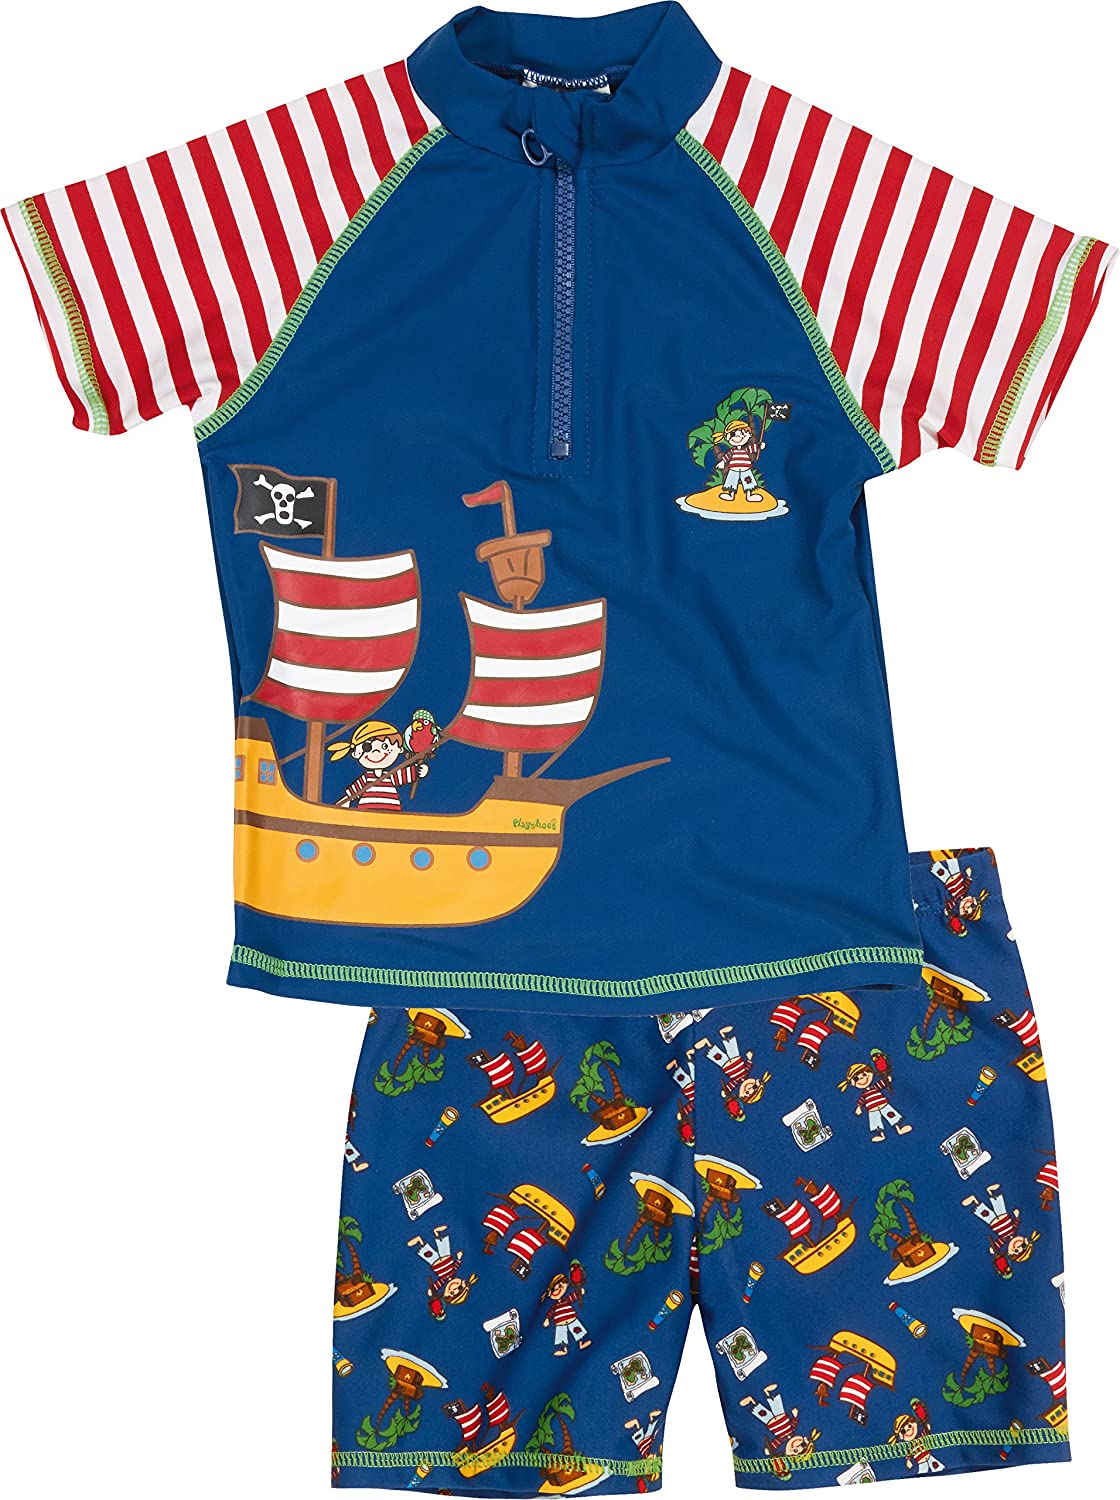 Playshoes Boy's UV Sun Protection 2 Piece Swim Set Swimsuit Pirate Island Swim Shorts Blue (Original) 460262 460262_44-74/80